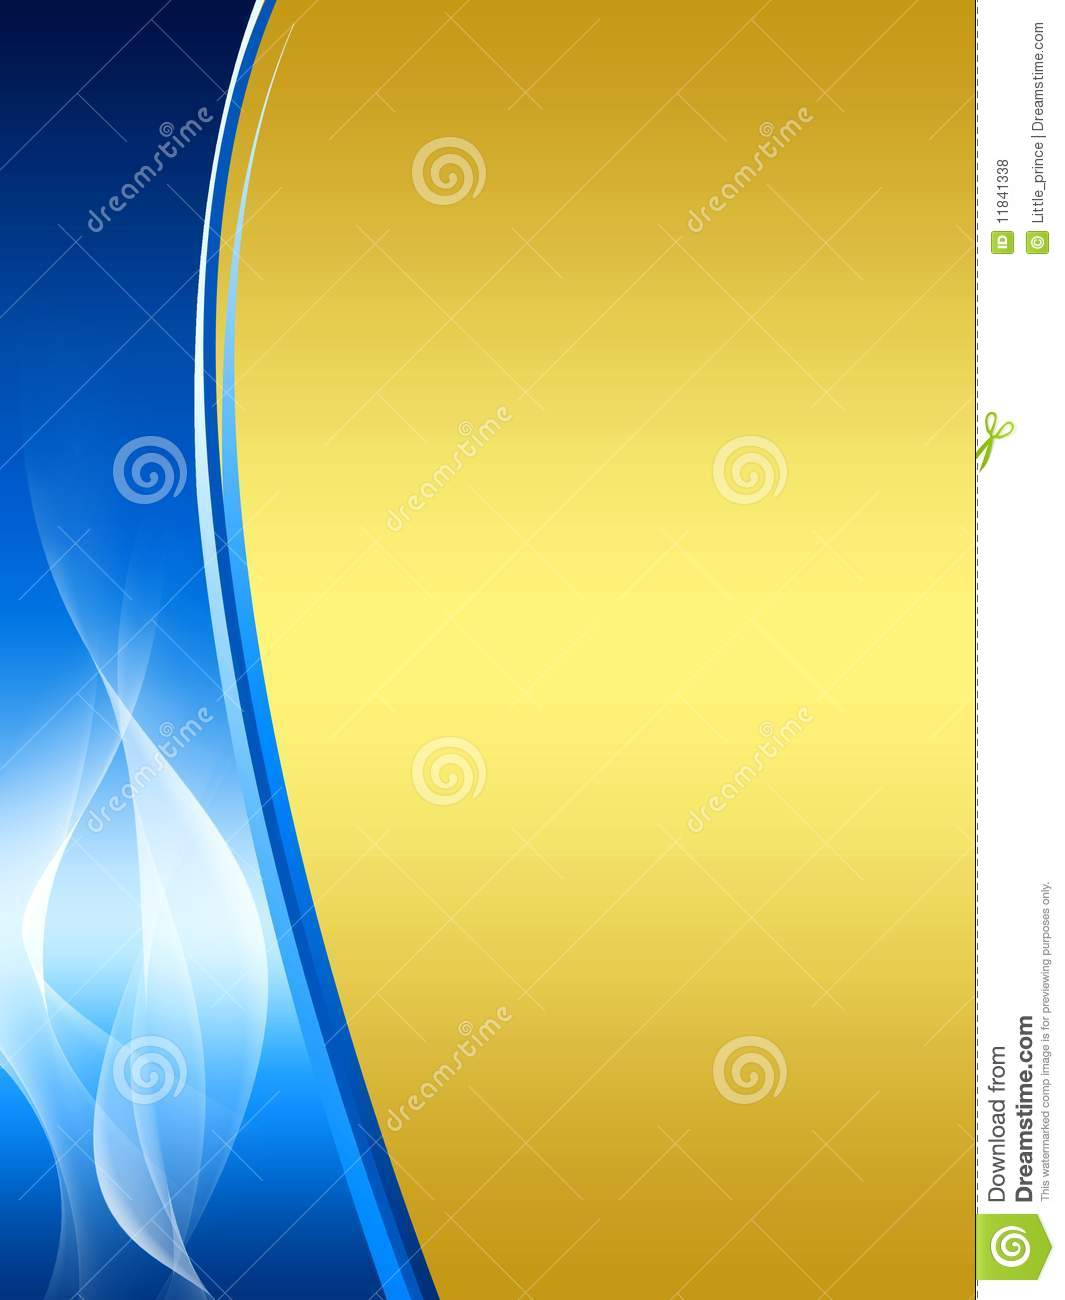 Blue And Gold Background Wallpaper Blue and gold abstract 1065x1300